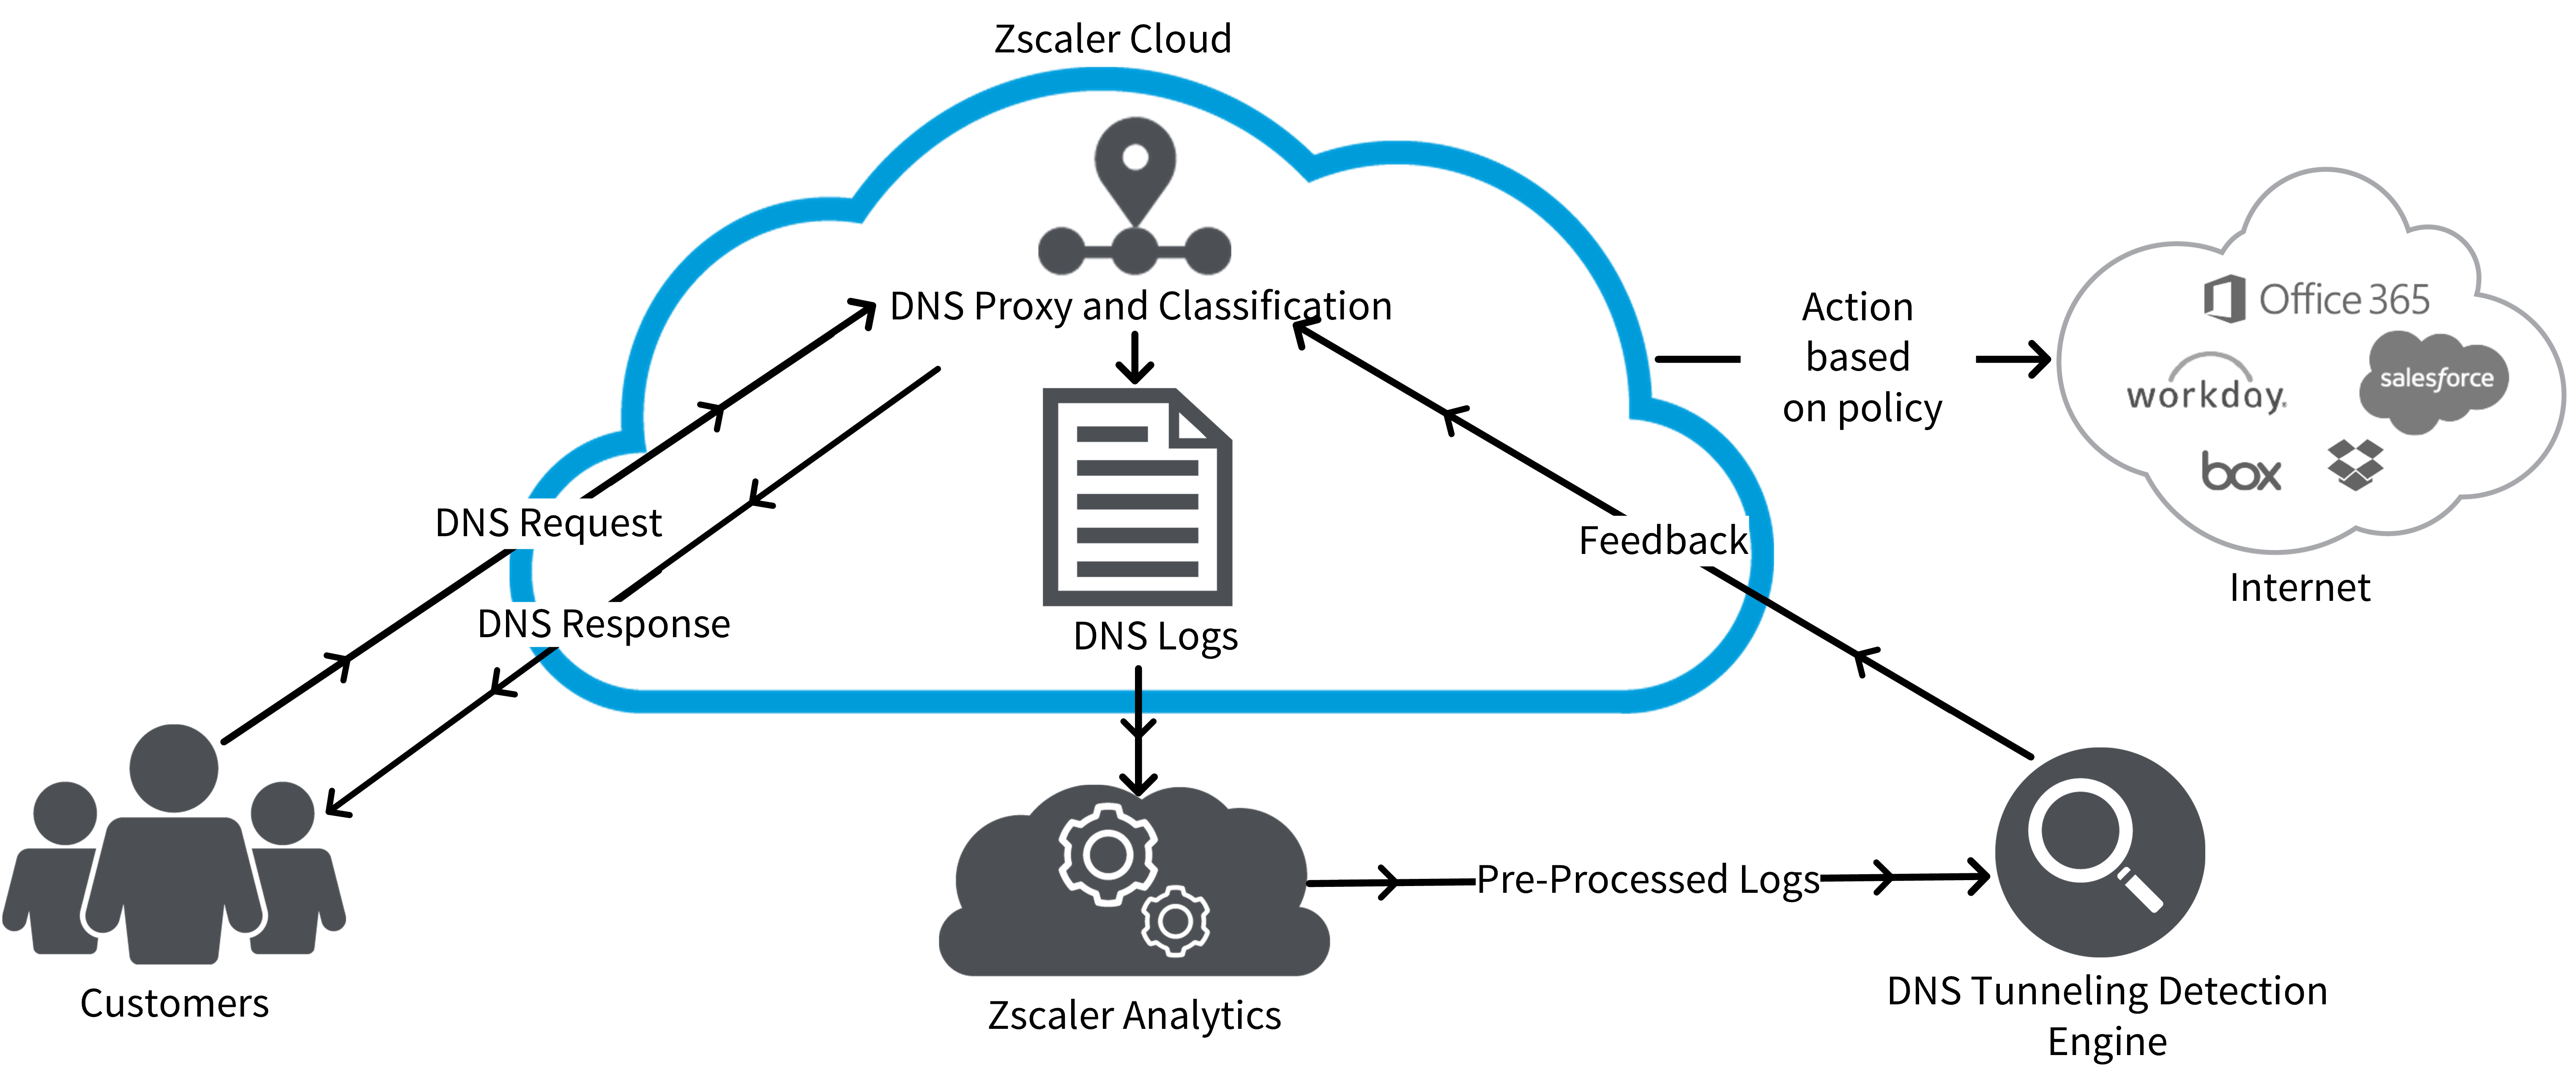 About DNS Tunnel Detection | Zscaler